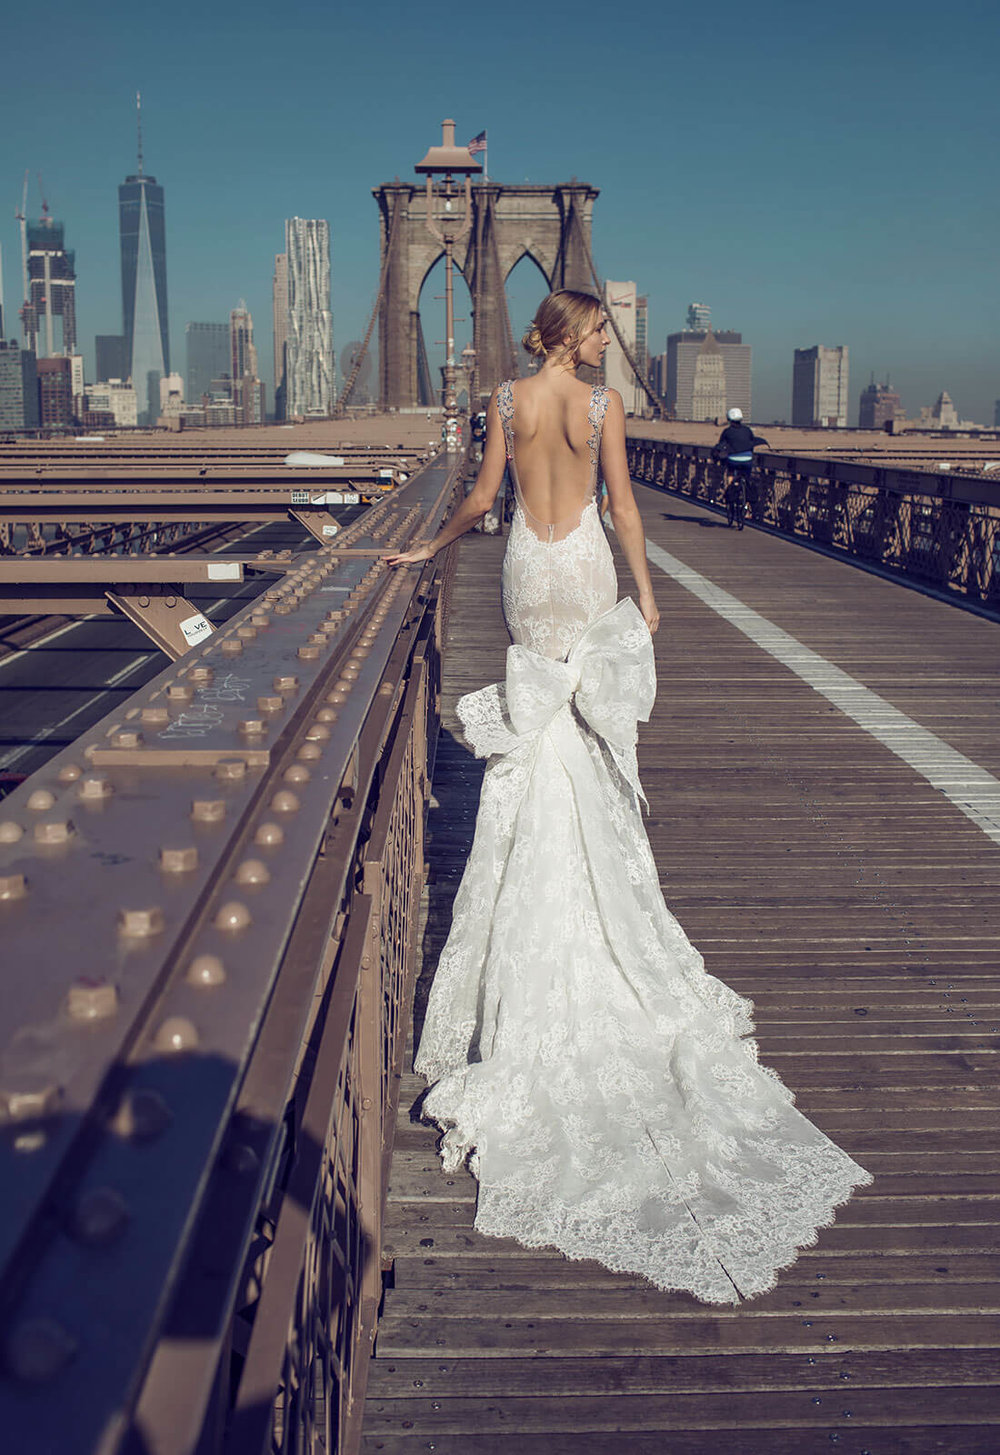 image courtesy of Pninatornai.com